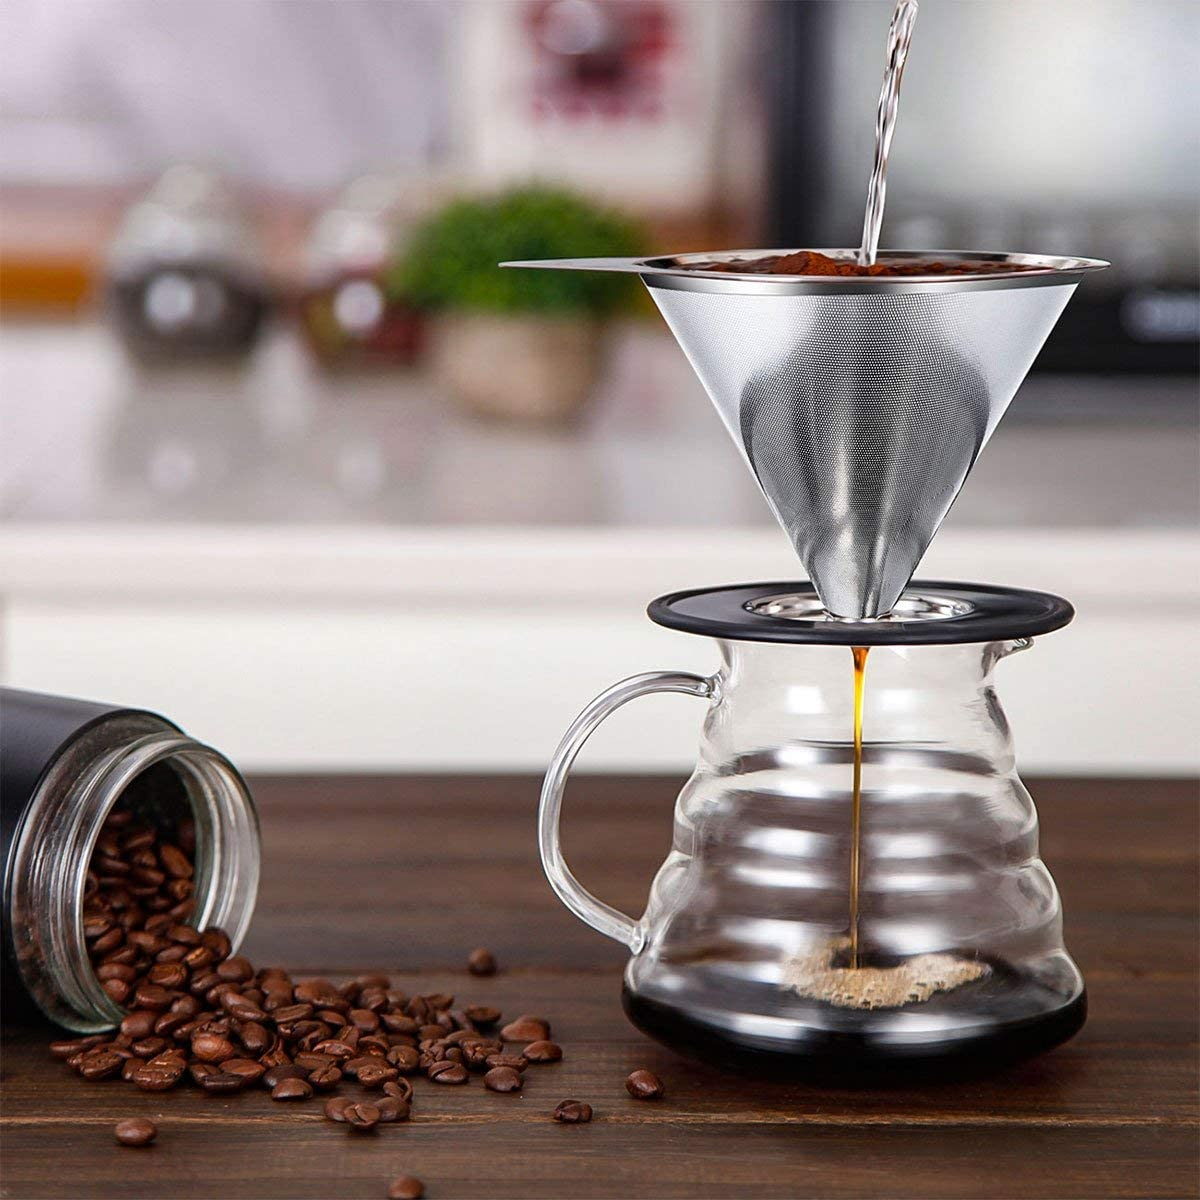 Pour Over Coffee Dripper Stainless Steel LHS Slow Drip Coffee Filter Metal Cone Paperless Reusable Single Cup Coffee Maker 1-2 Cup With Non-slip Cup Stand and Cleaning Brush